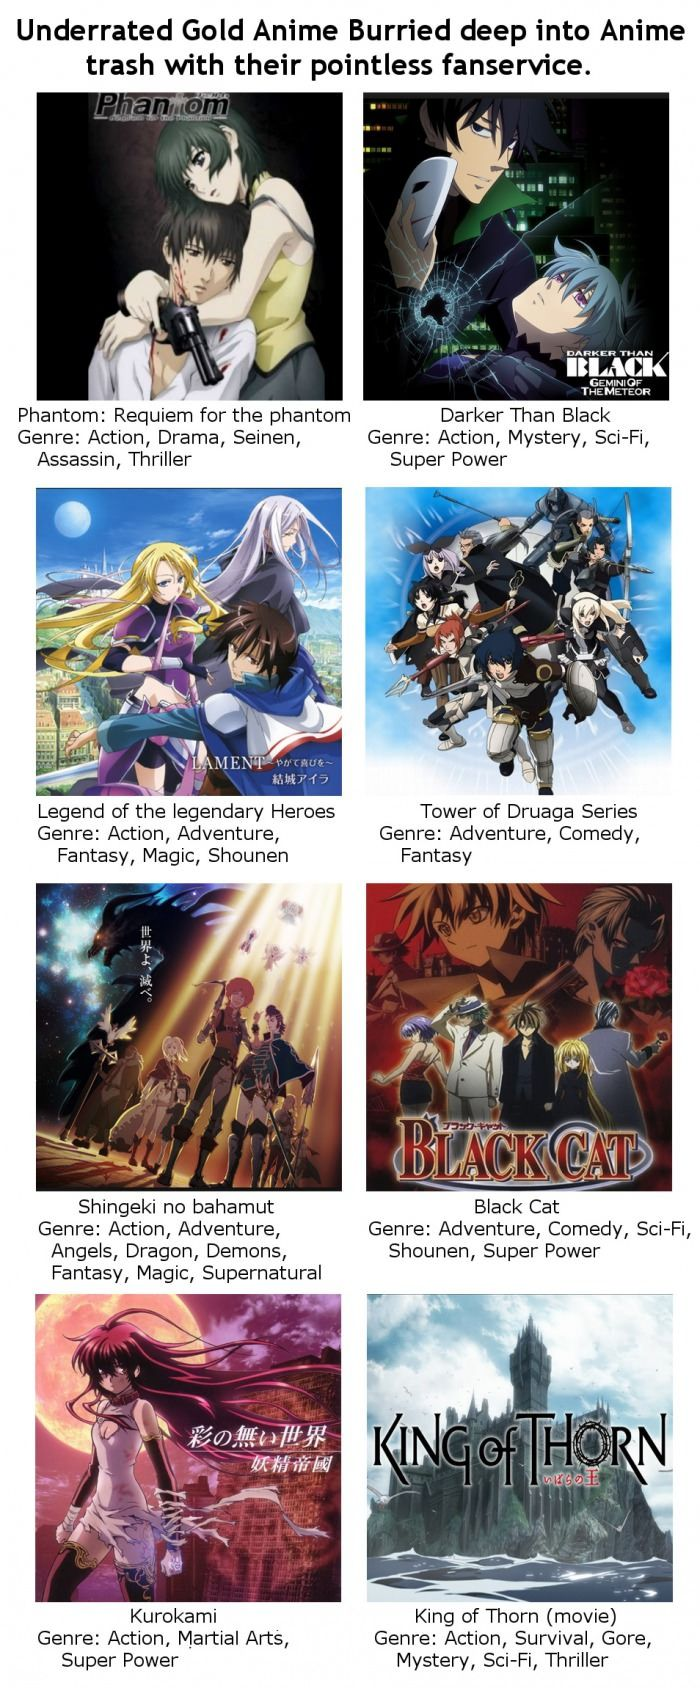 Not all Anime are shit... At least 30 Anime films